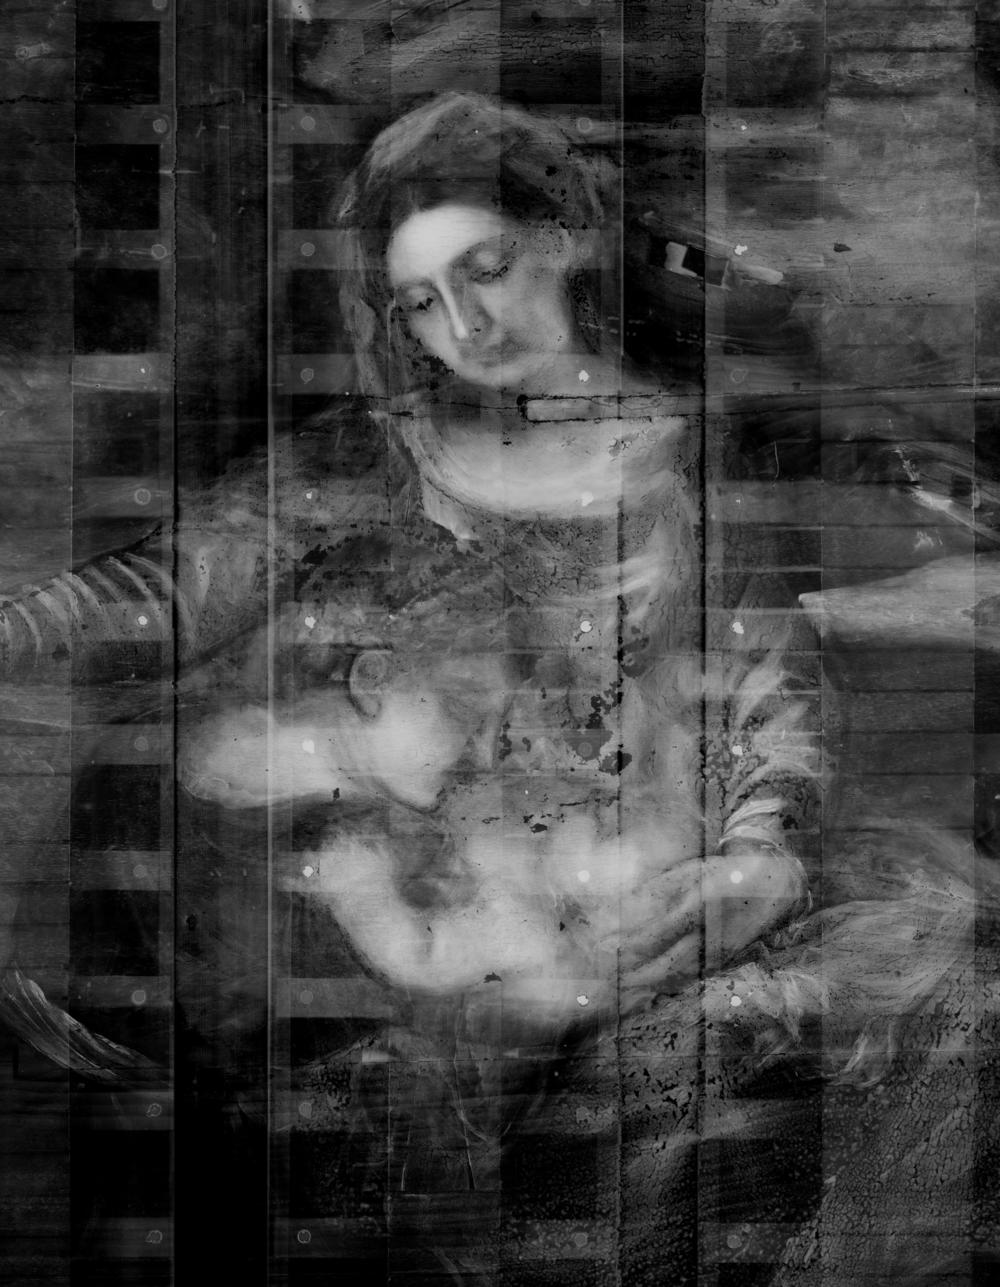 Detail of the x-radiograph composite revealing pentimenti in the figure of the Christ child, for example, the position of his head and proper right arm